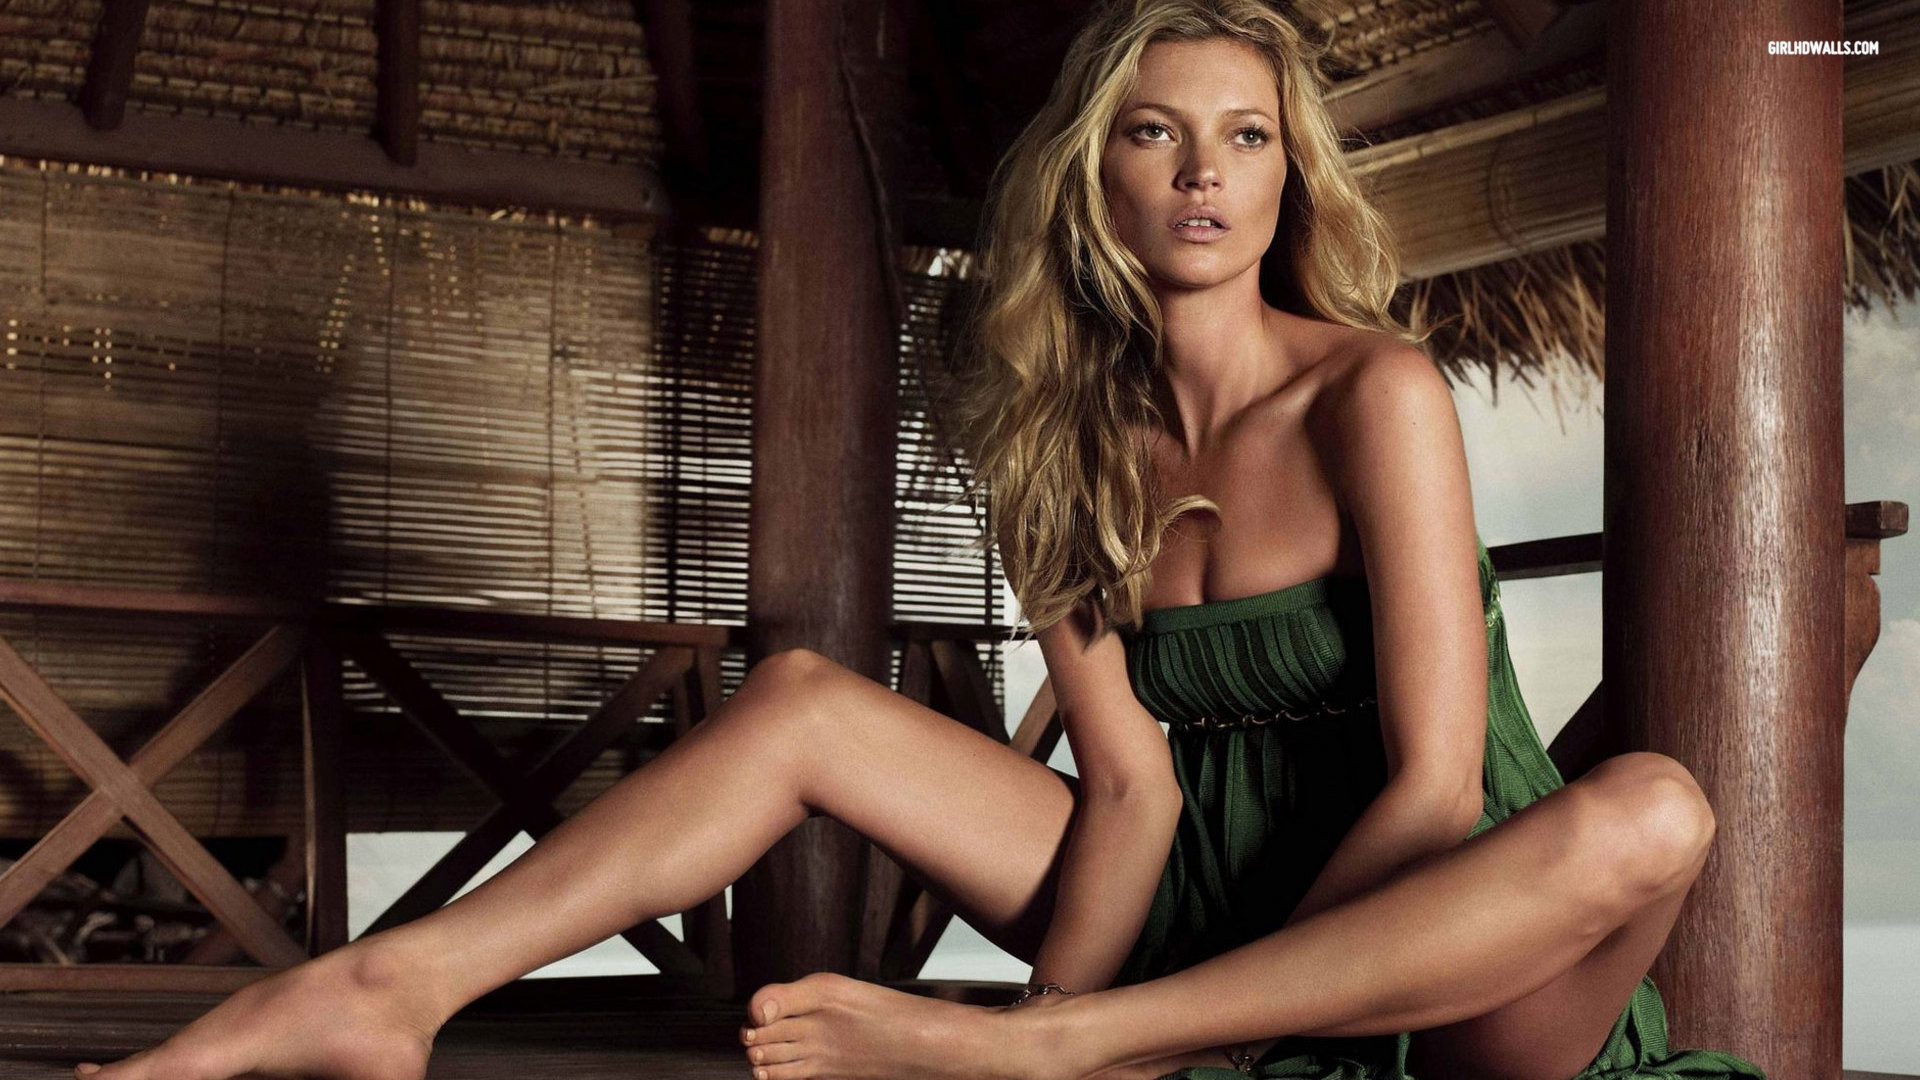 Res: 1920x1080, Kate Moss hd .